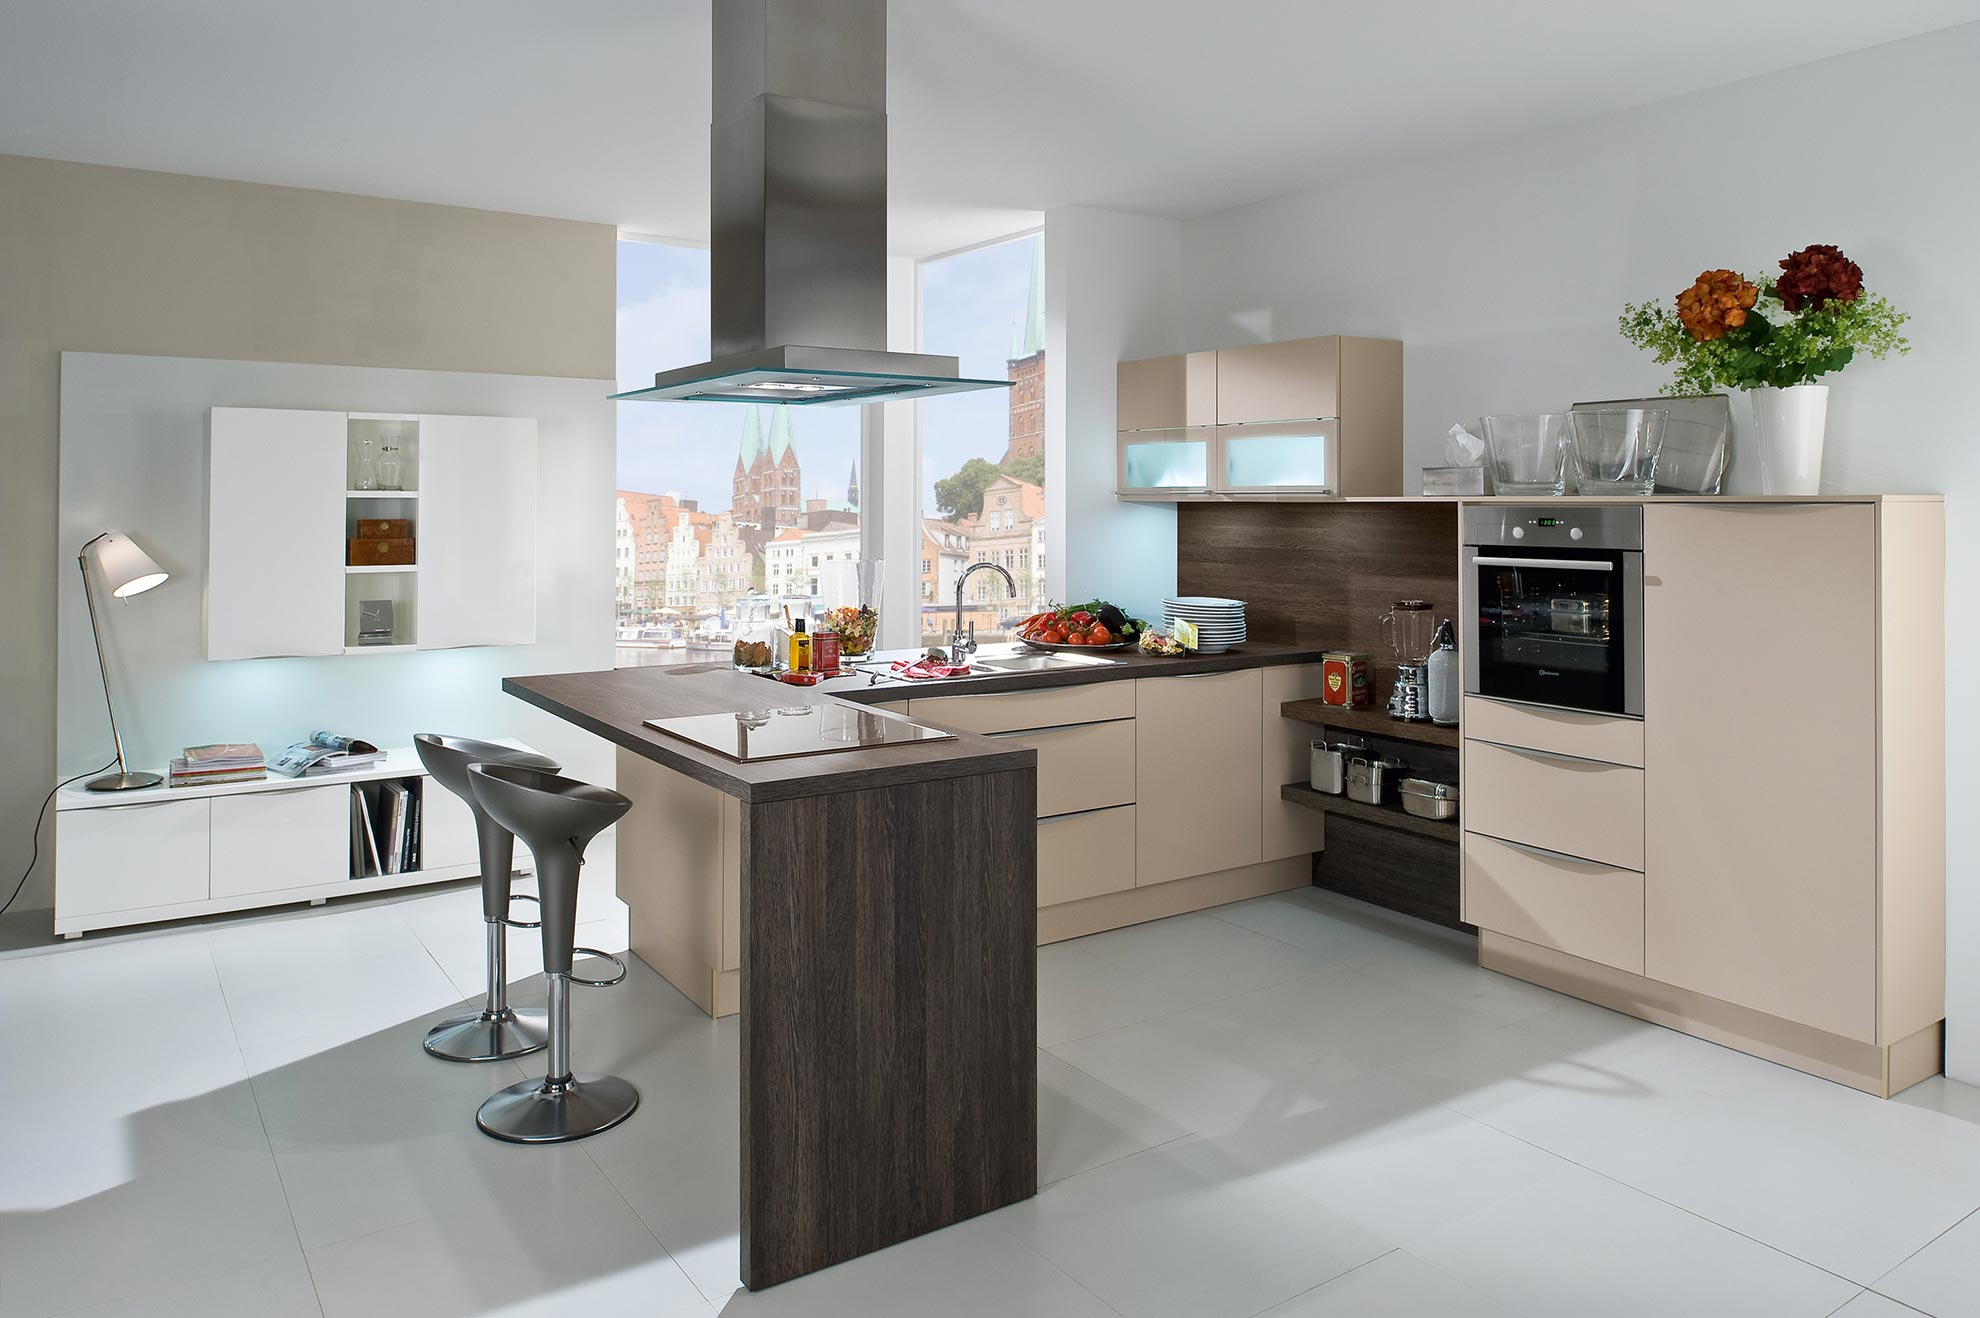 Kitchens bedford hertfordshire bedfordshire fitted - Cuisine avec bar table ...